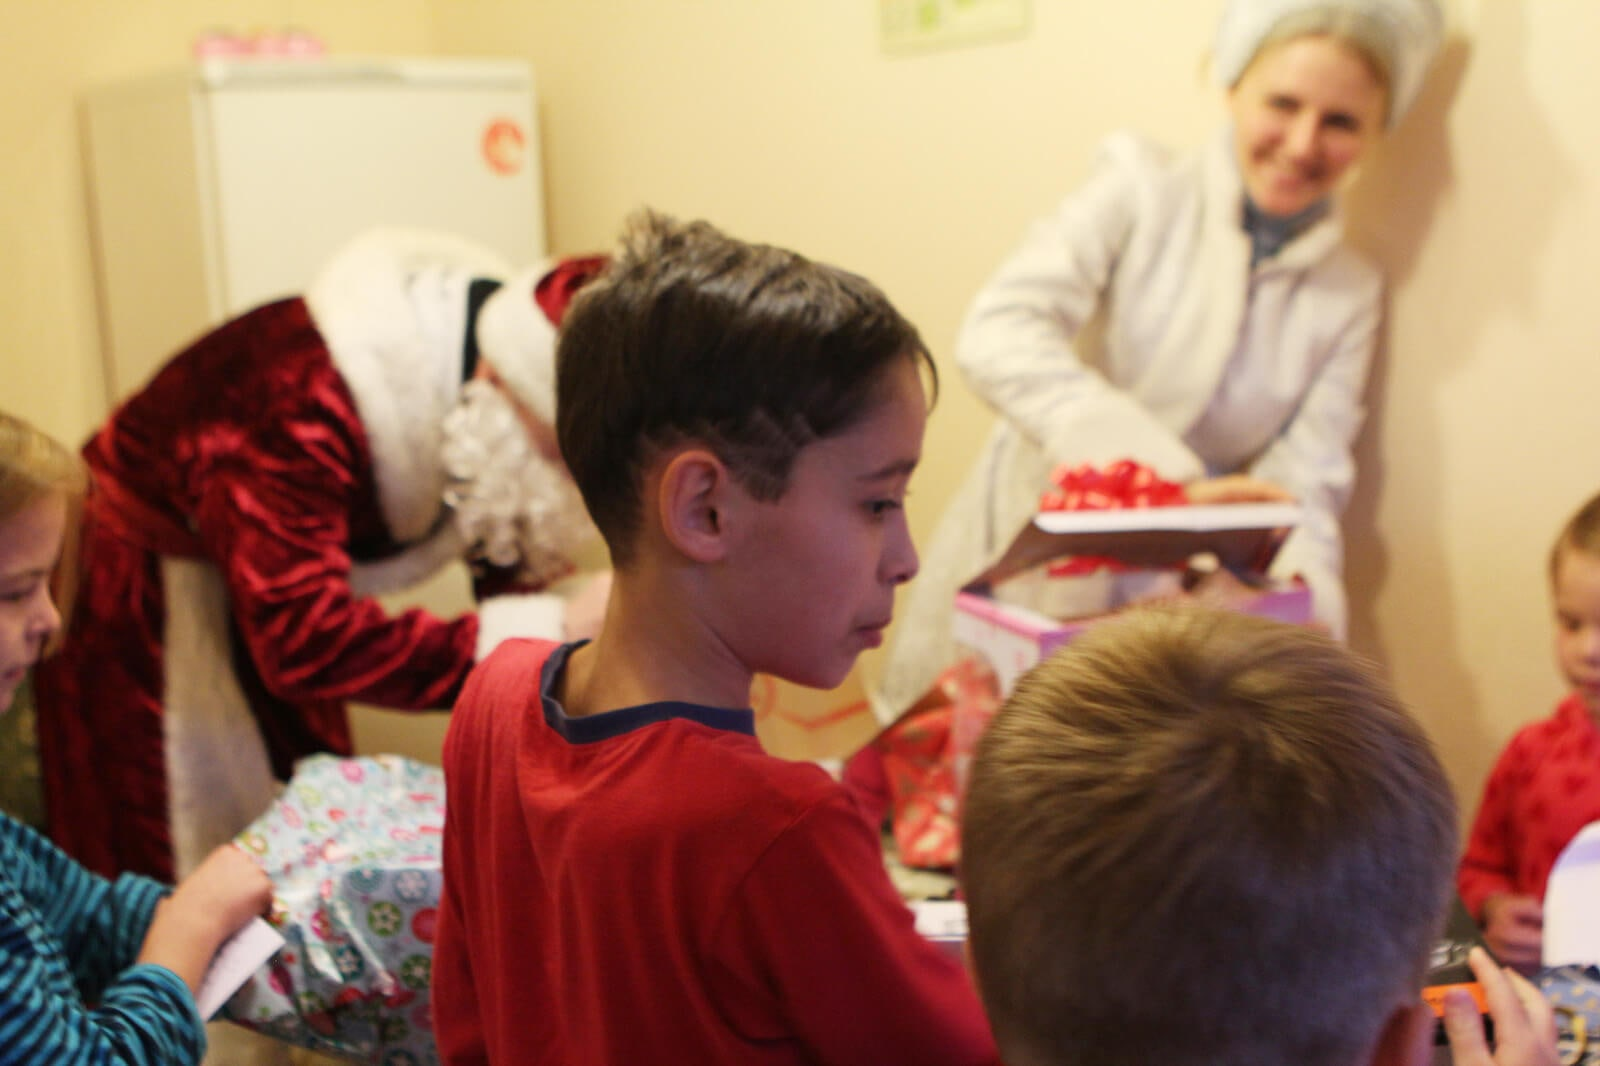 Brightening Christmas for kids: Redwerk team visited children in foster families, photo 10